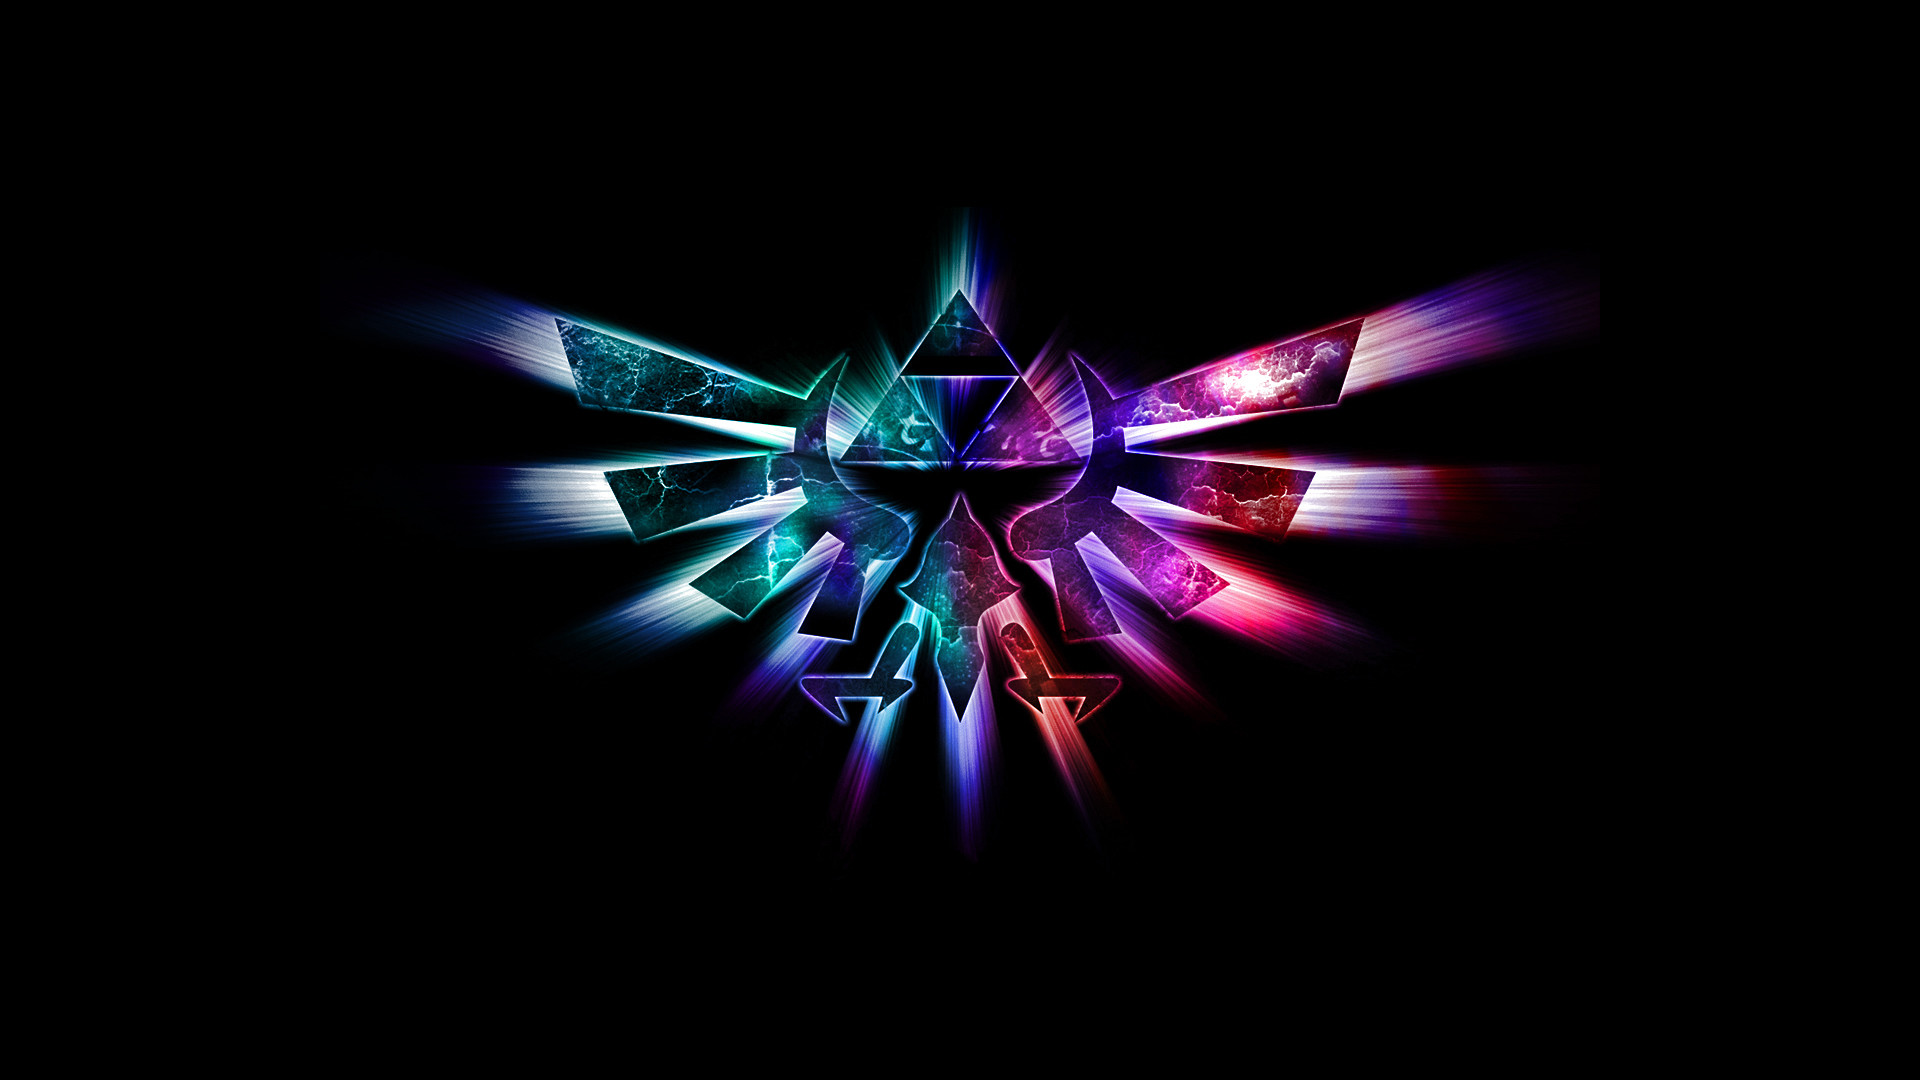 1920x1080 triforce zelda hd  neon wallpaper desktop